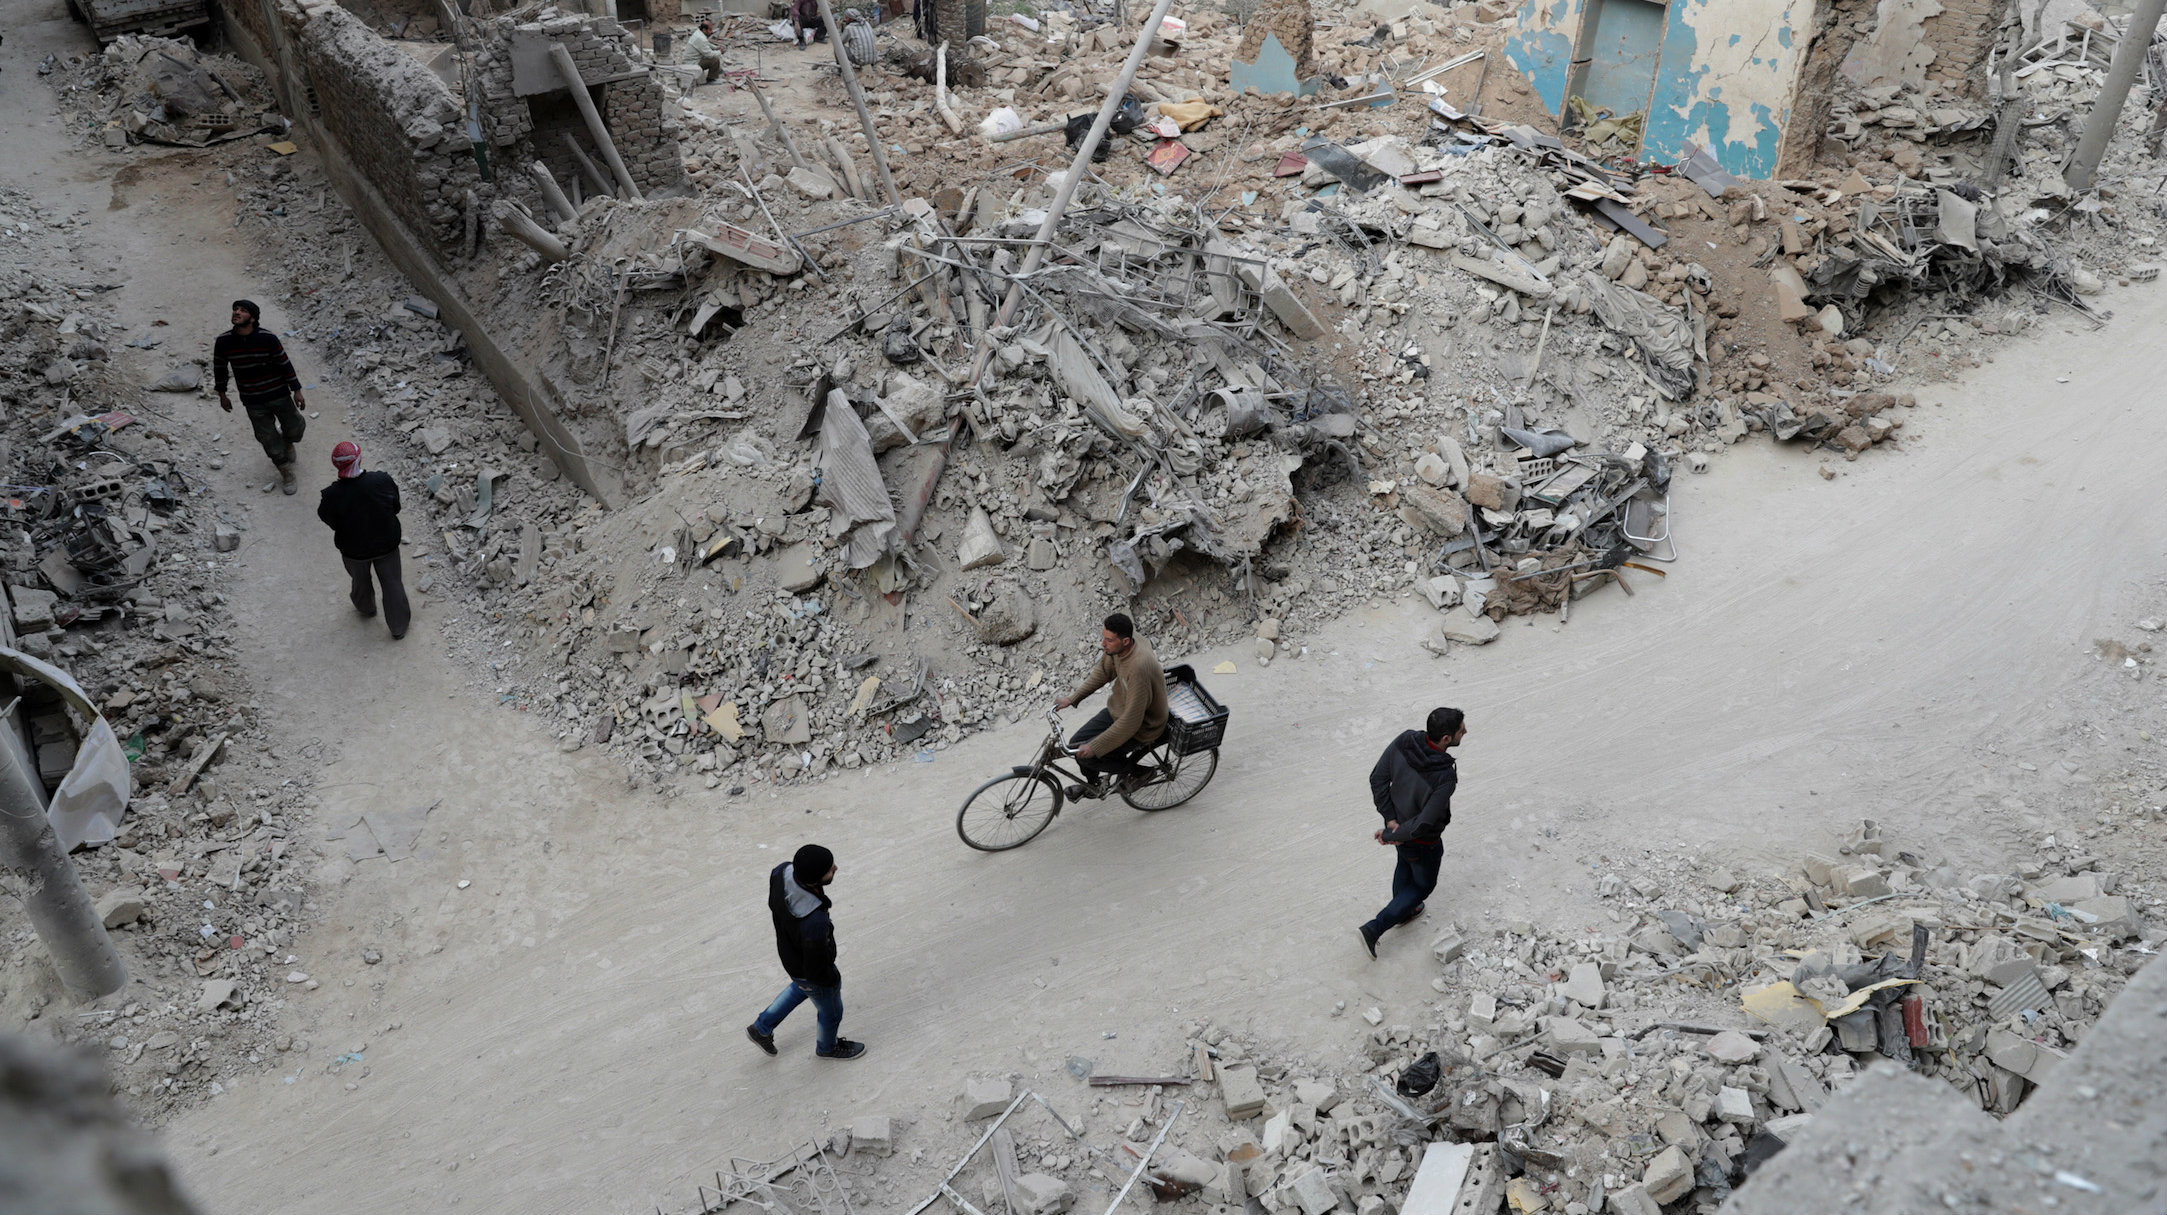 TOPSHOT - Syrians walk past the rubble of destroyed buildings in the rebel-held town of Douma, on the eastern outskirts of the capital Damascus, on February 27, 2017. Douma has witnessed government raids forcontinue despite the United Nations confirmation a few days earlier that Moscow formally asked its ally Damascus to stop launching strikes during the Geneva negotiations, which began earlier in the week. / AFP / Abd Doumany (Photo credit should read ABD DOUMANY/AFP/Getty Images)